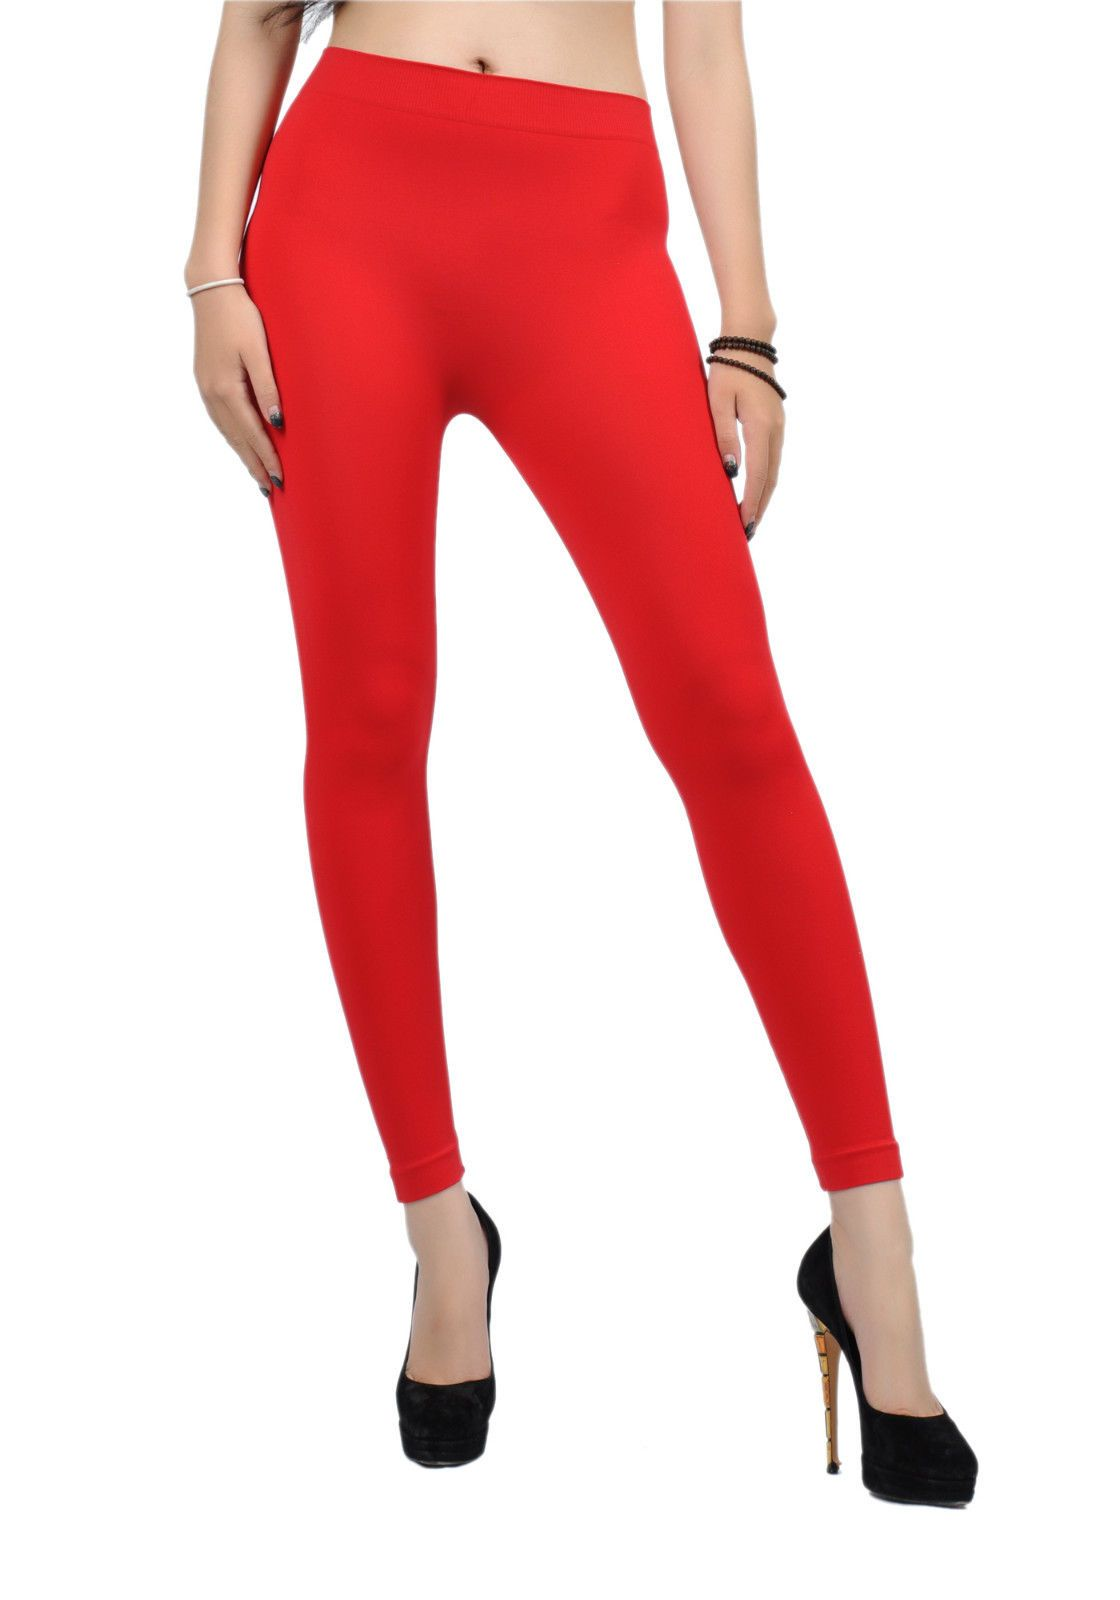 7c423bc075baa4 Soho Girls Comfy Seamless Full Leggings,Red One Size Fits Most, SG-32 For  Sale - Item #1639278